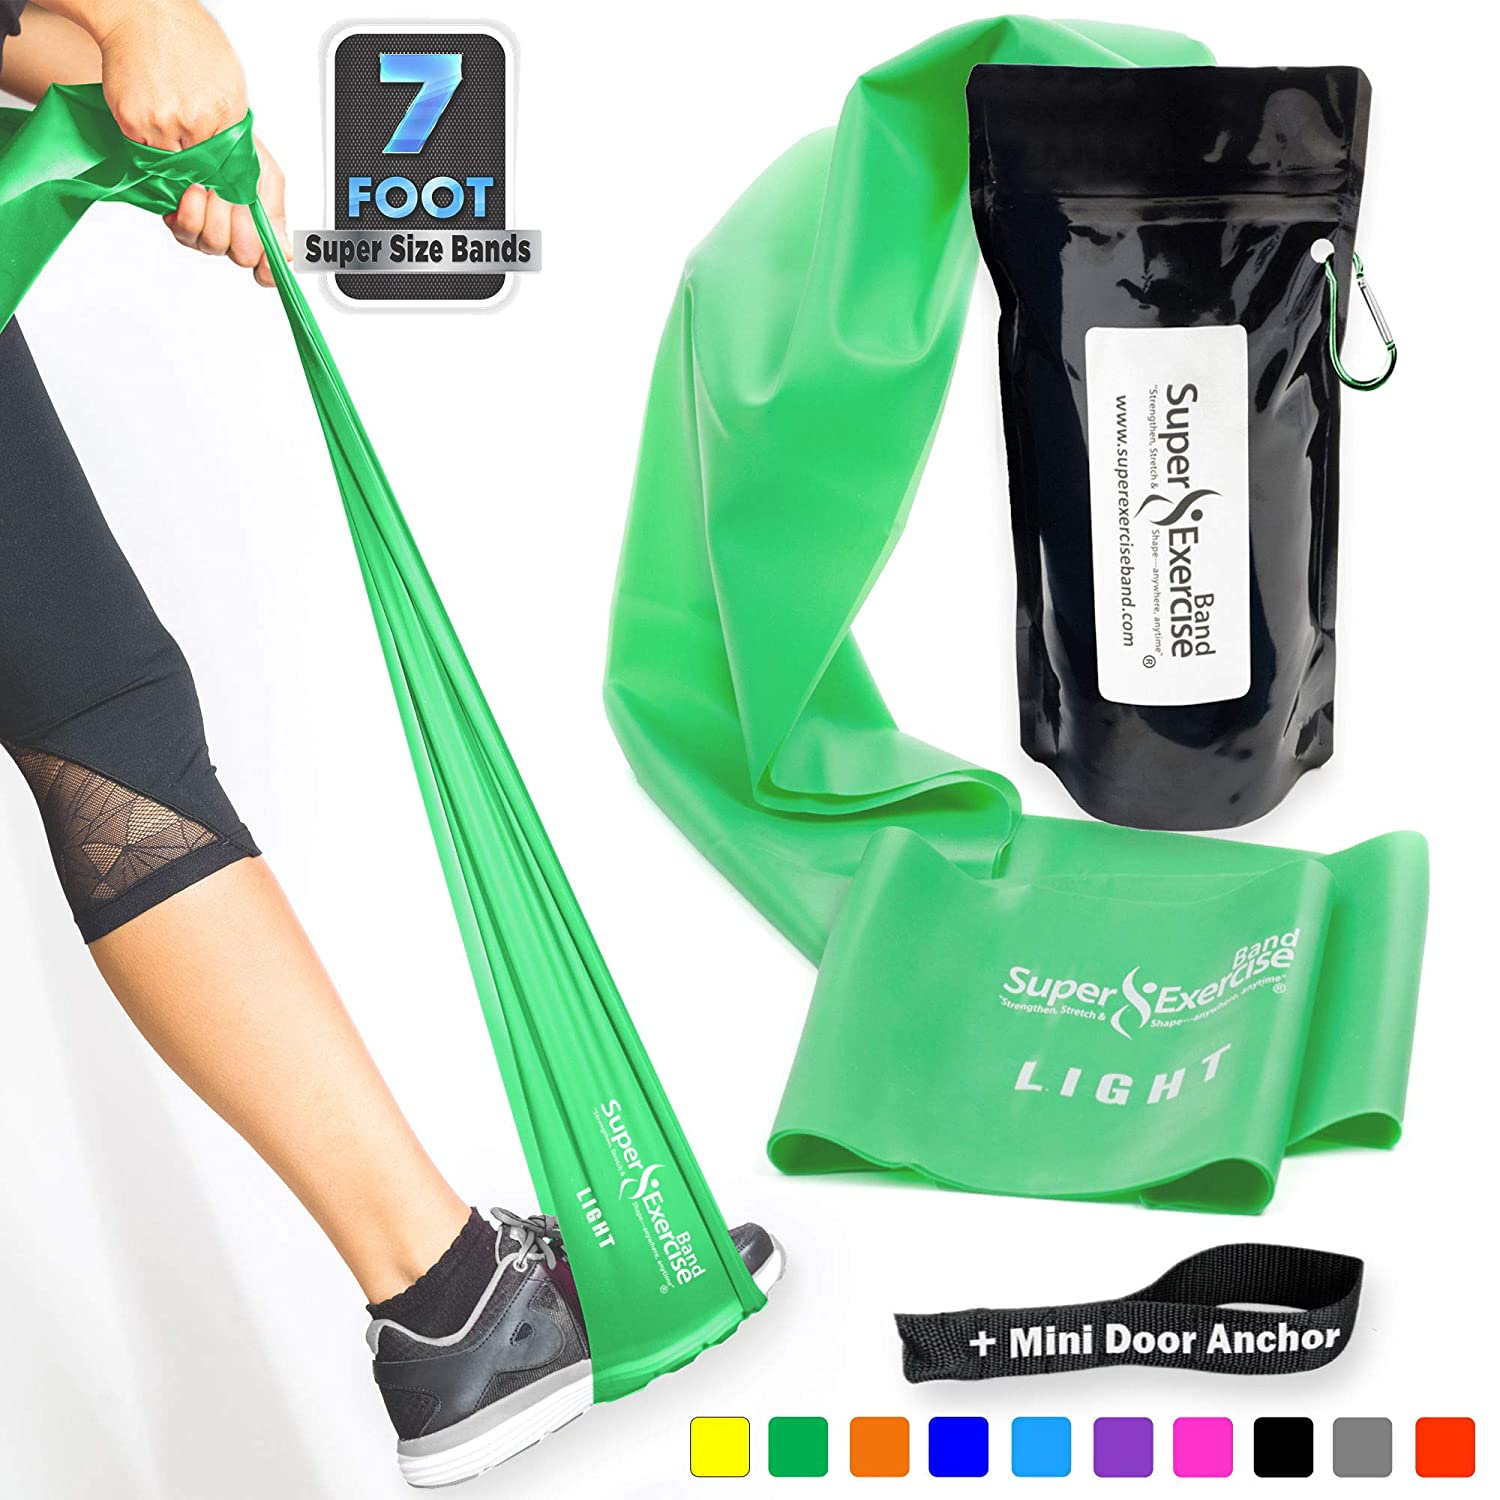 Super Exercise Band 7 ft. Long Latex Free Resistance Bands and Mini Door Anchor. Home Gym Fitness for Strength Training, Physical Therapy, Yoga, Pilates, Chair Workouts. Choose Light, Medium or Heavy.